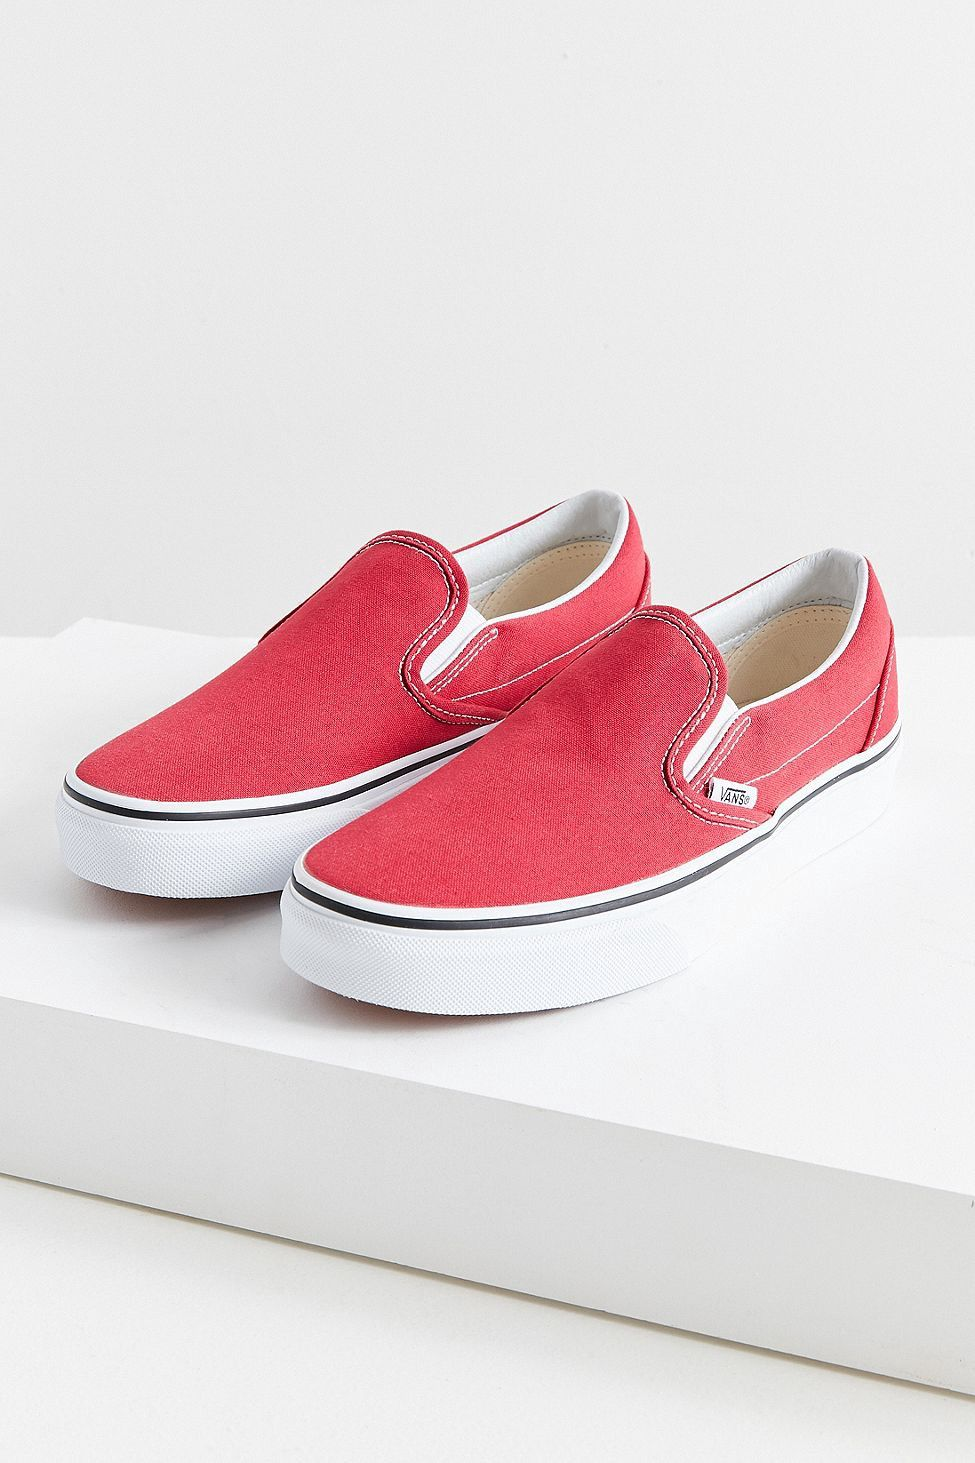 7cd22aa2fd9048 Urban Outfitters Vans Classic Canvas Slip-On Sneaker - Crimson W 8 M 6.5